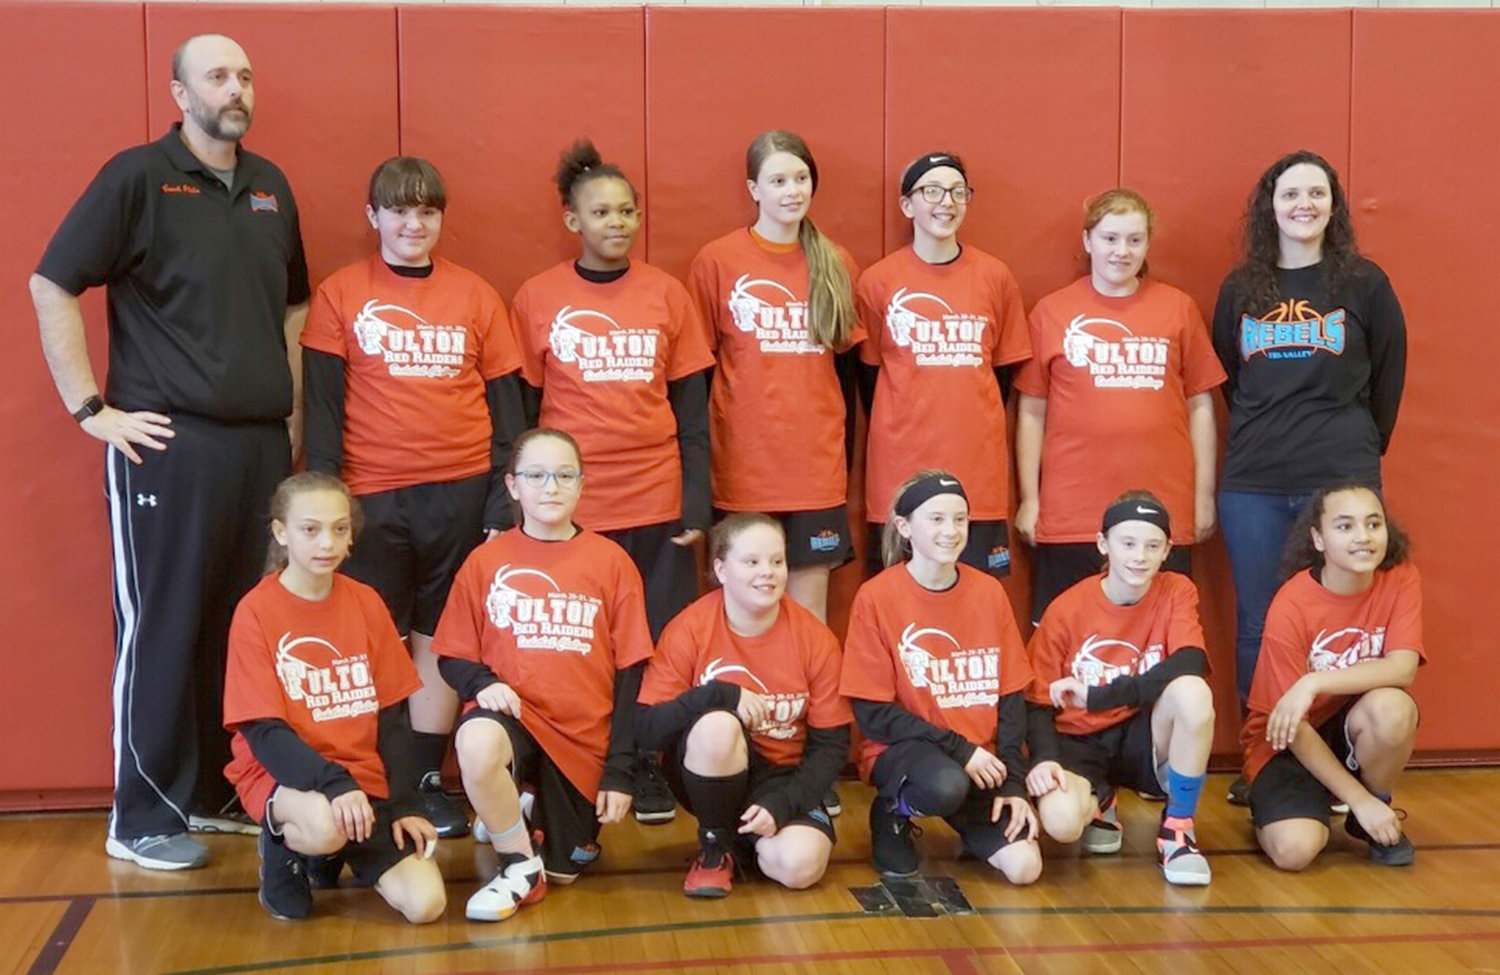 SIXTH-GRADE CHAMPS — The sixth-grade team for the Tri-Valley Rebels captured its second championship of the season by placing first at the Fulton Red Raiders Tournament. Front row, from left: Alana Jackson, Natalia Dipaolo, Emma Weiler, Fiona McMahon, Isabeal McMahon and Liz Dougherty. Back row: coach Rick Platis, Emily Cadrette, Elizabeth Morris, Caitlin Platis, Kayleana VanDeusen, Claire Moore and coach Alyssa Lubeck.